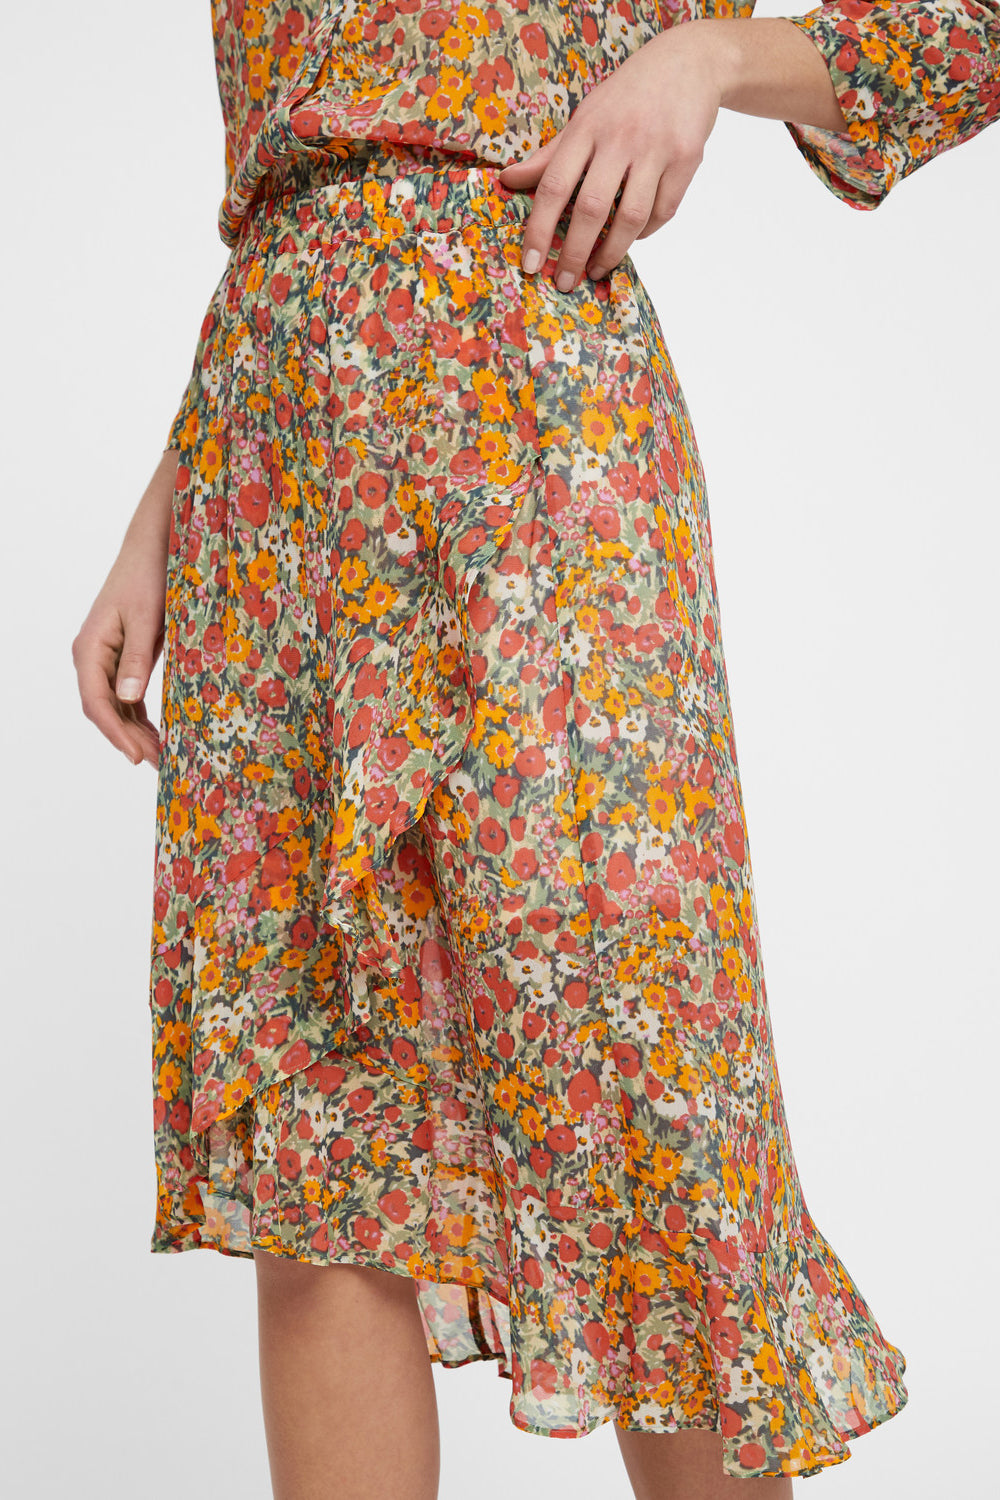 SECOND FEMALE - Bloom Skirt online at PAYA boutique